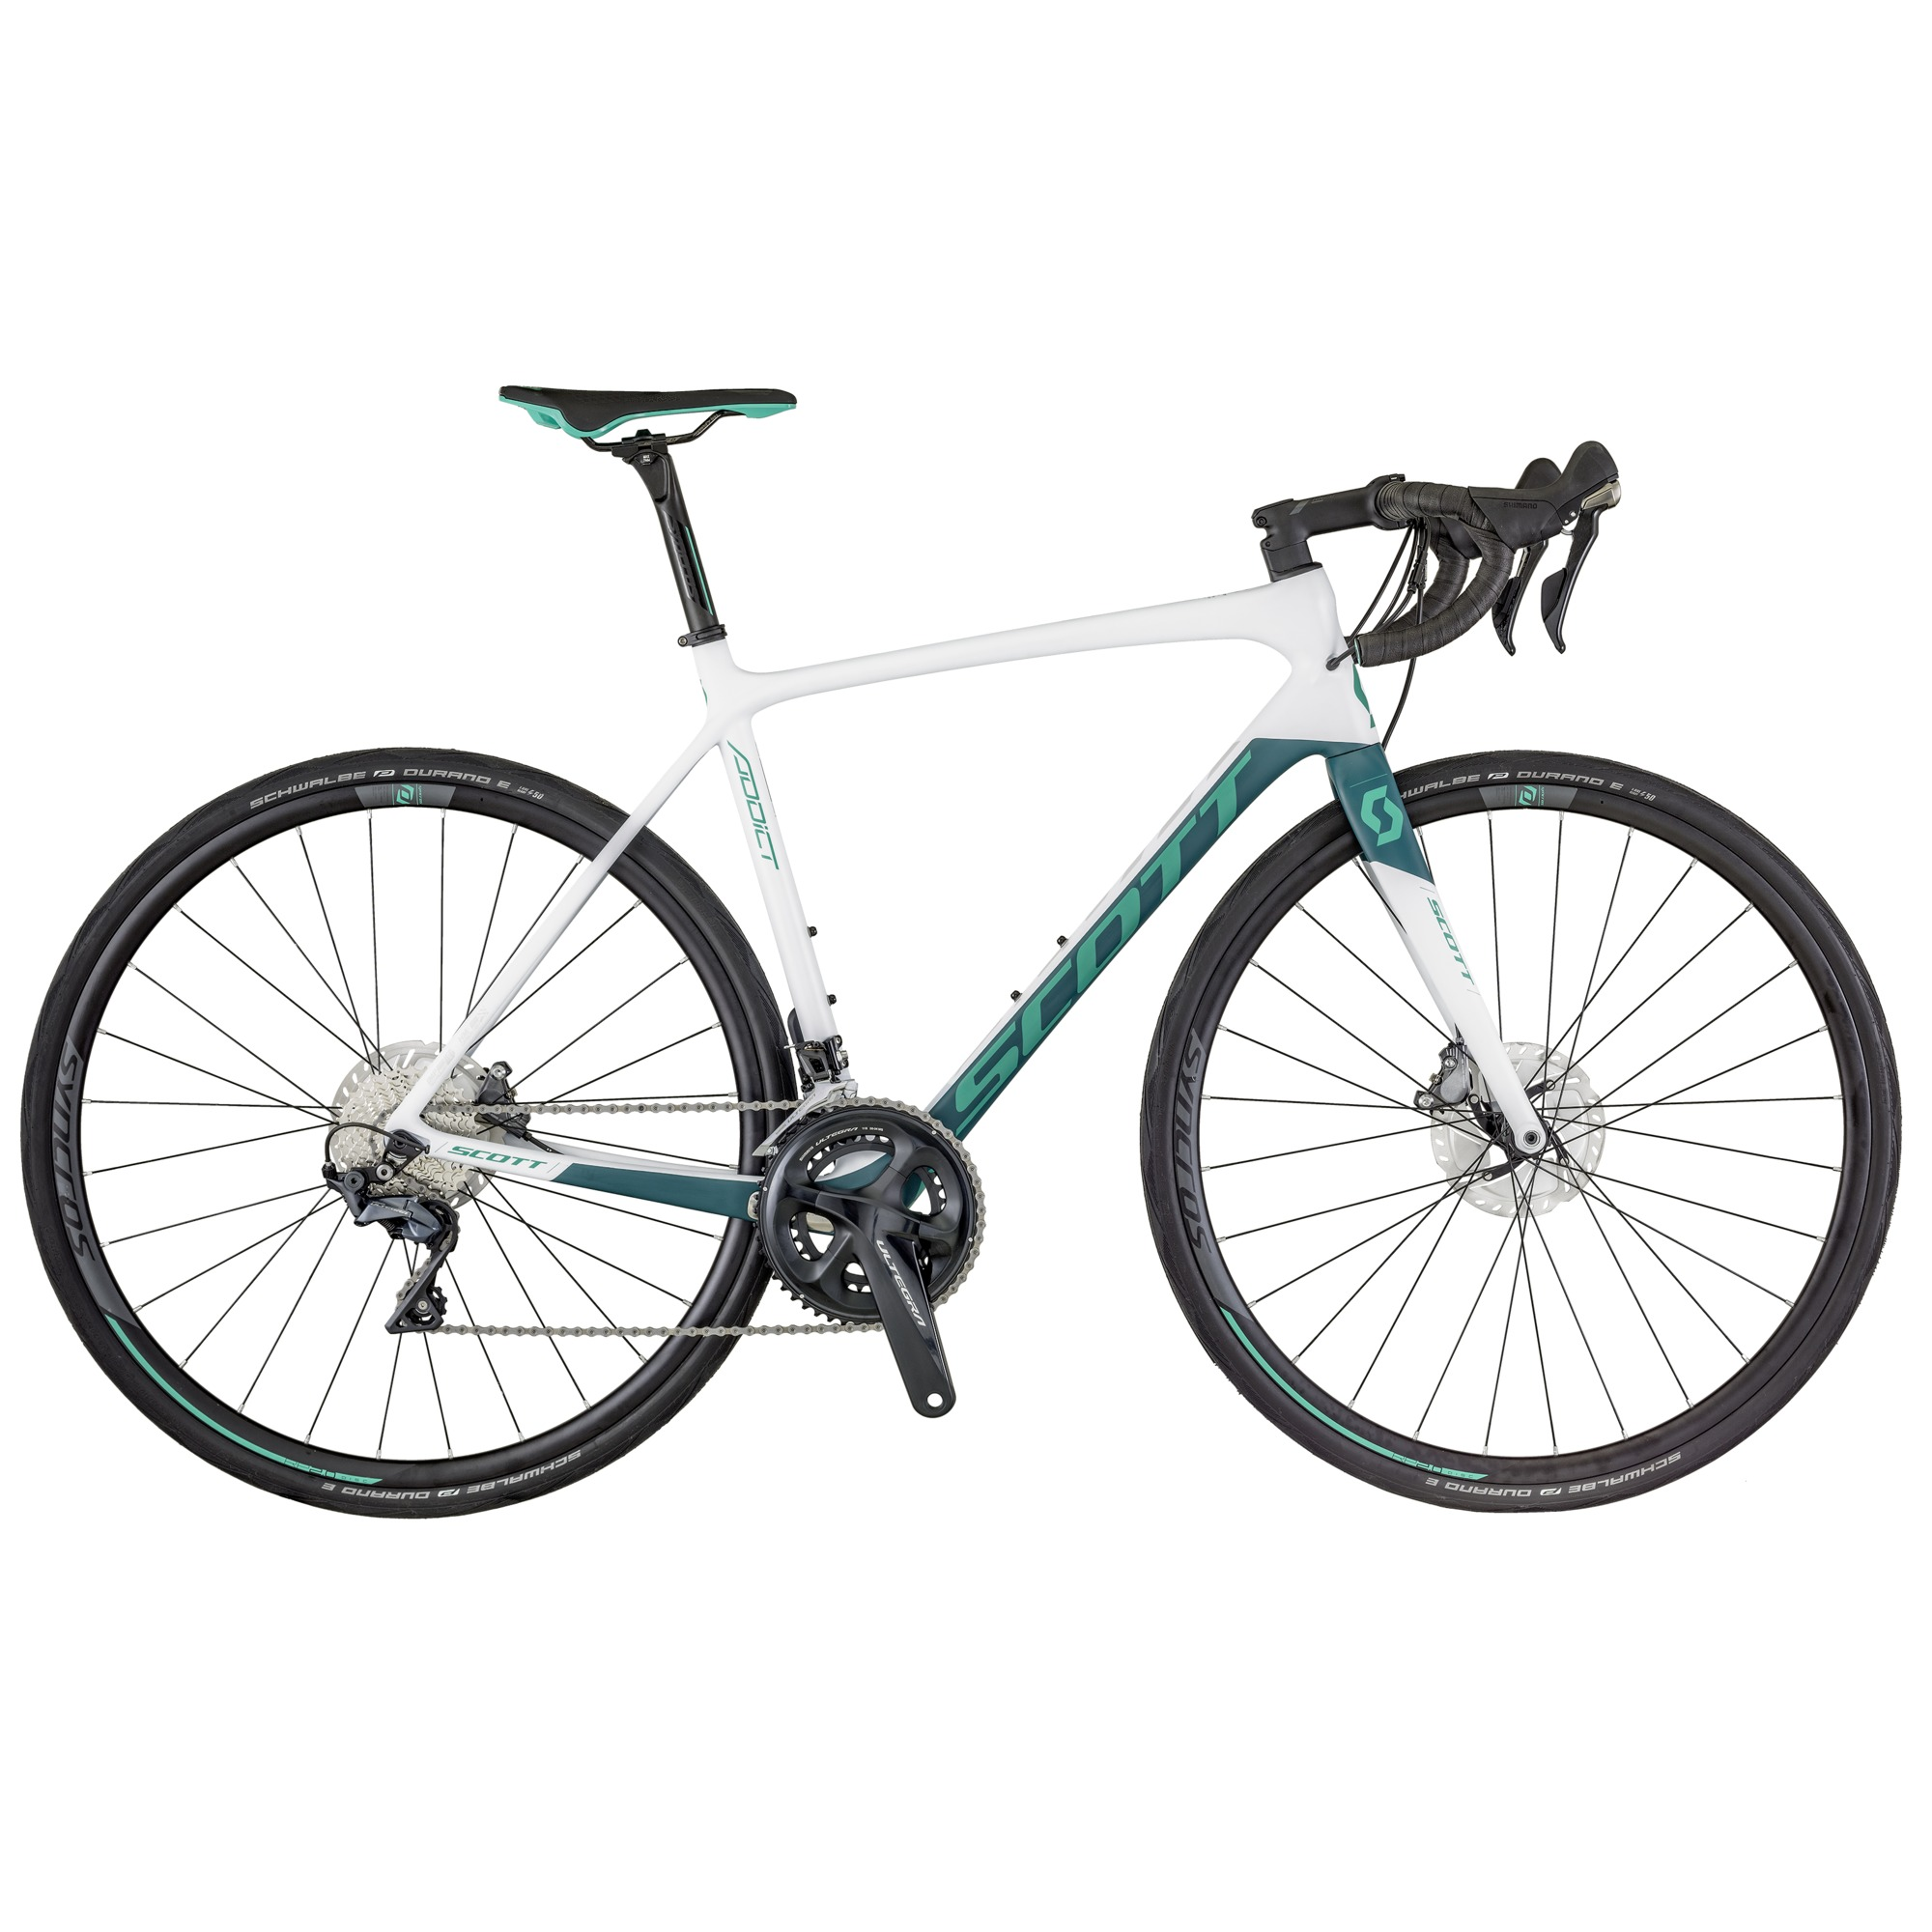 SCOTT Contessa Addict 15 Disc Bike L56 - Zweirad Homann